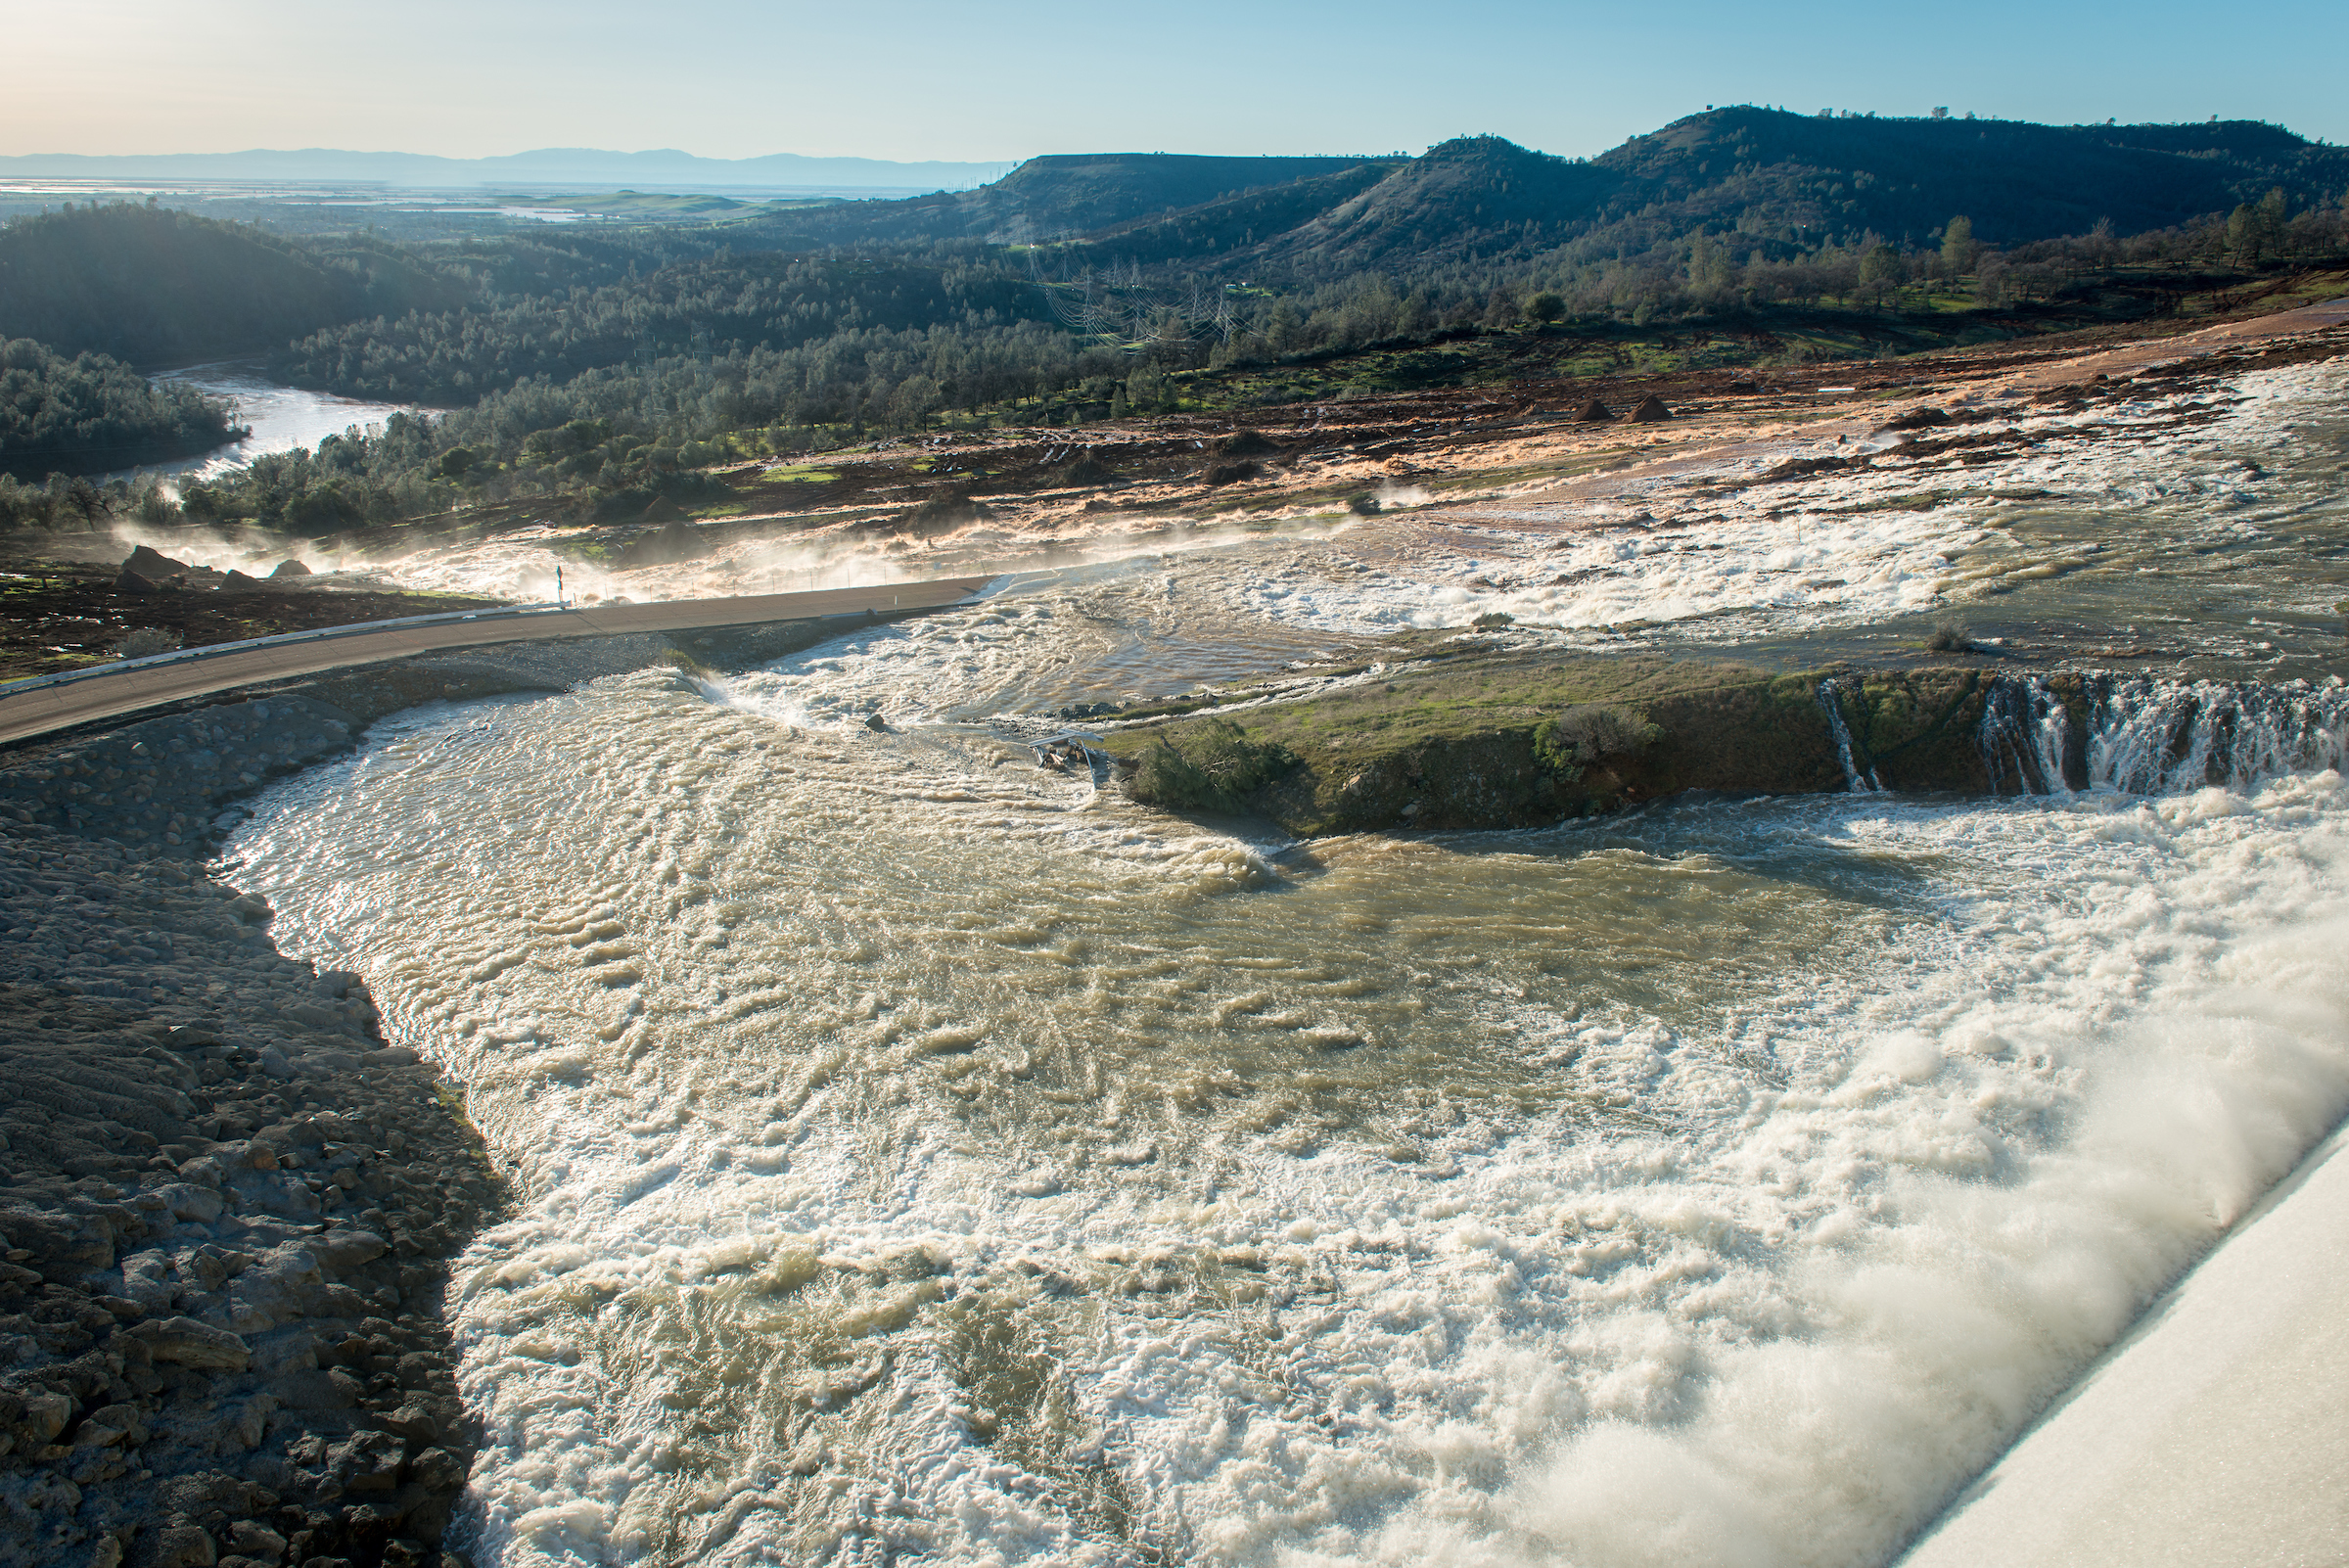 PHOTOS: Oroville Dam Spillway Trouble and Evacuation | The